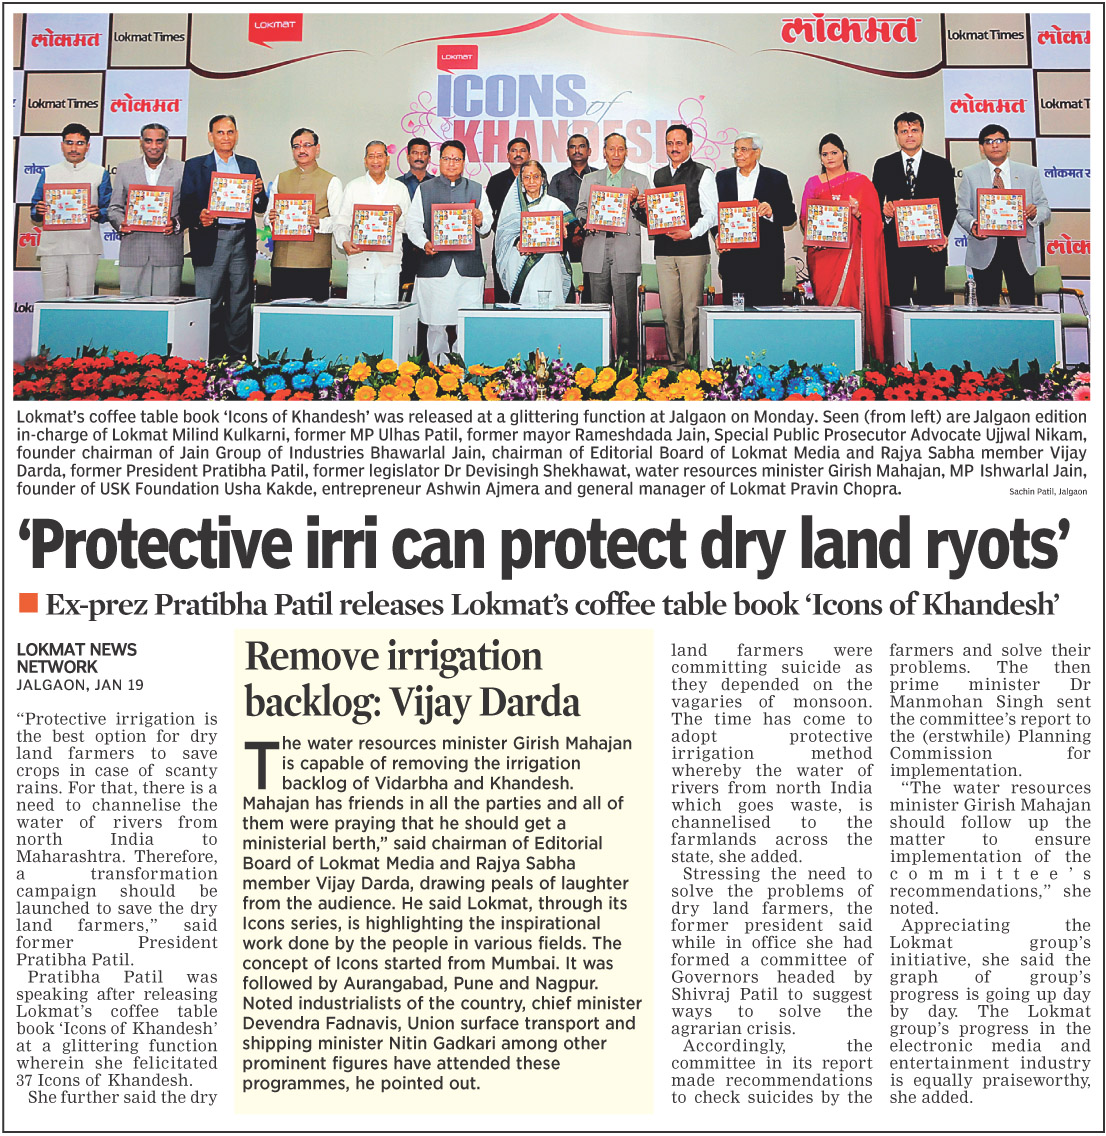 'Protective irri can protect dry land ryots'